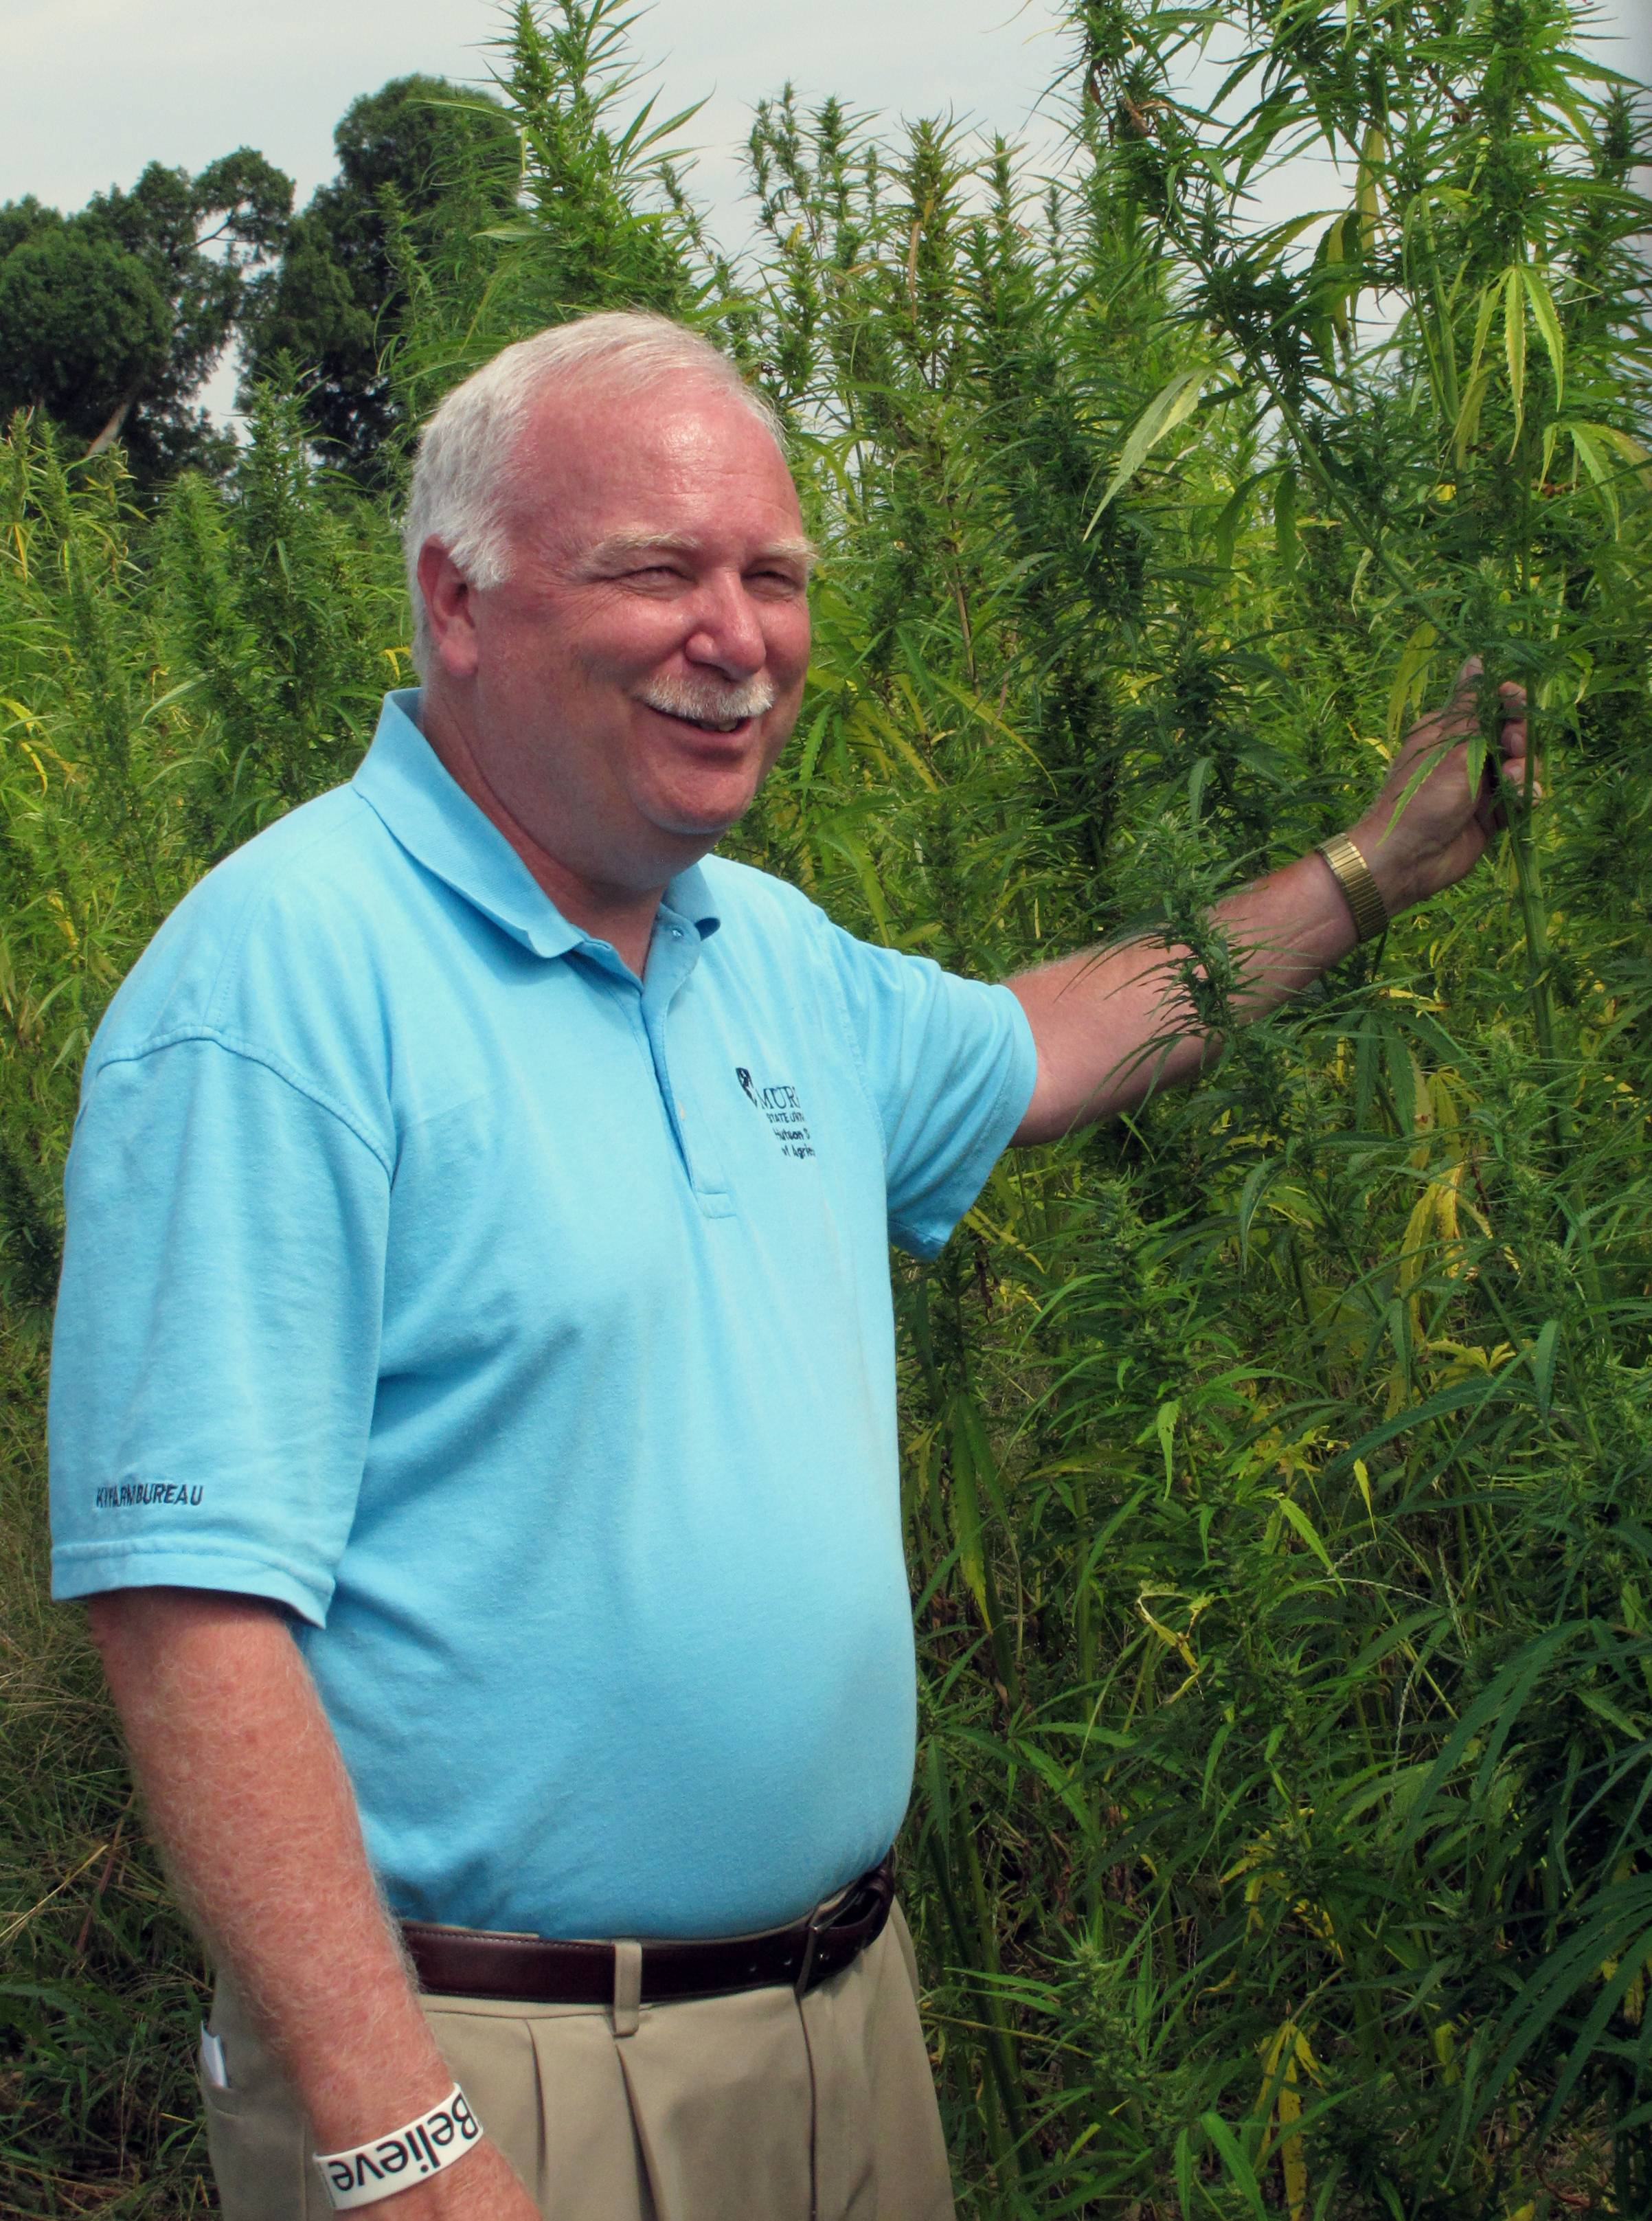 Tony L. Brannon, Murray State University's agriculture dean, stands near a hemp crop at the school's research farm in Murray, Ky.